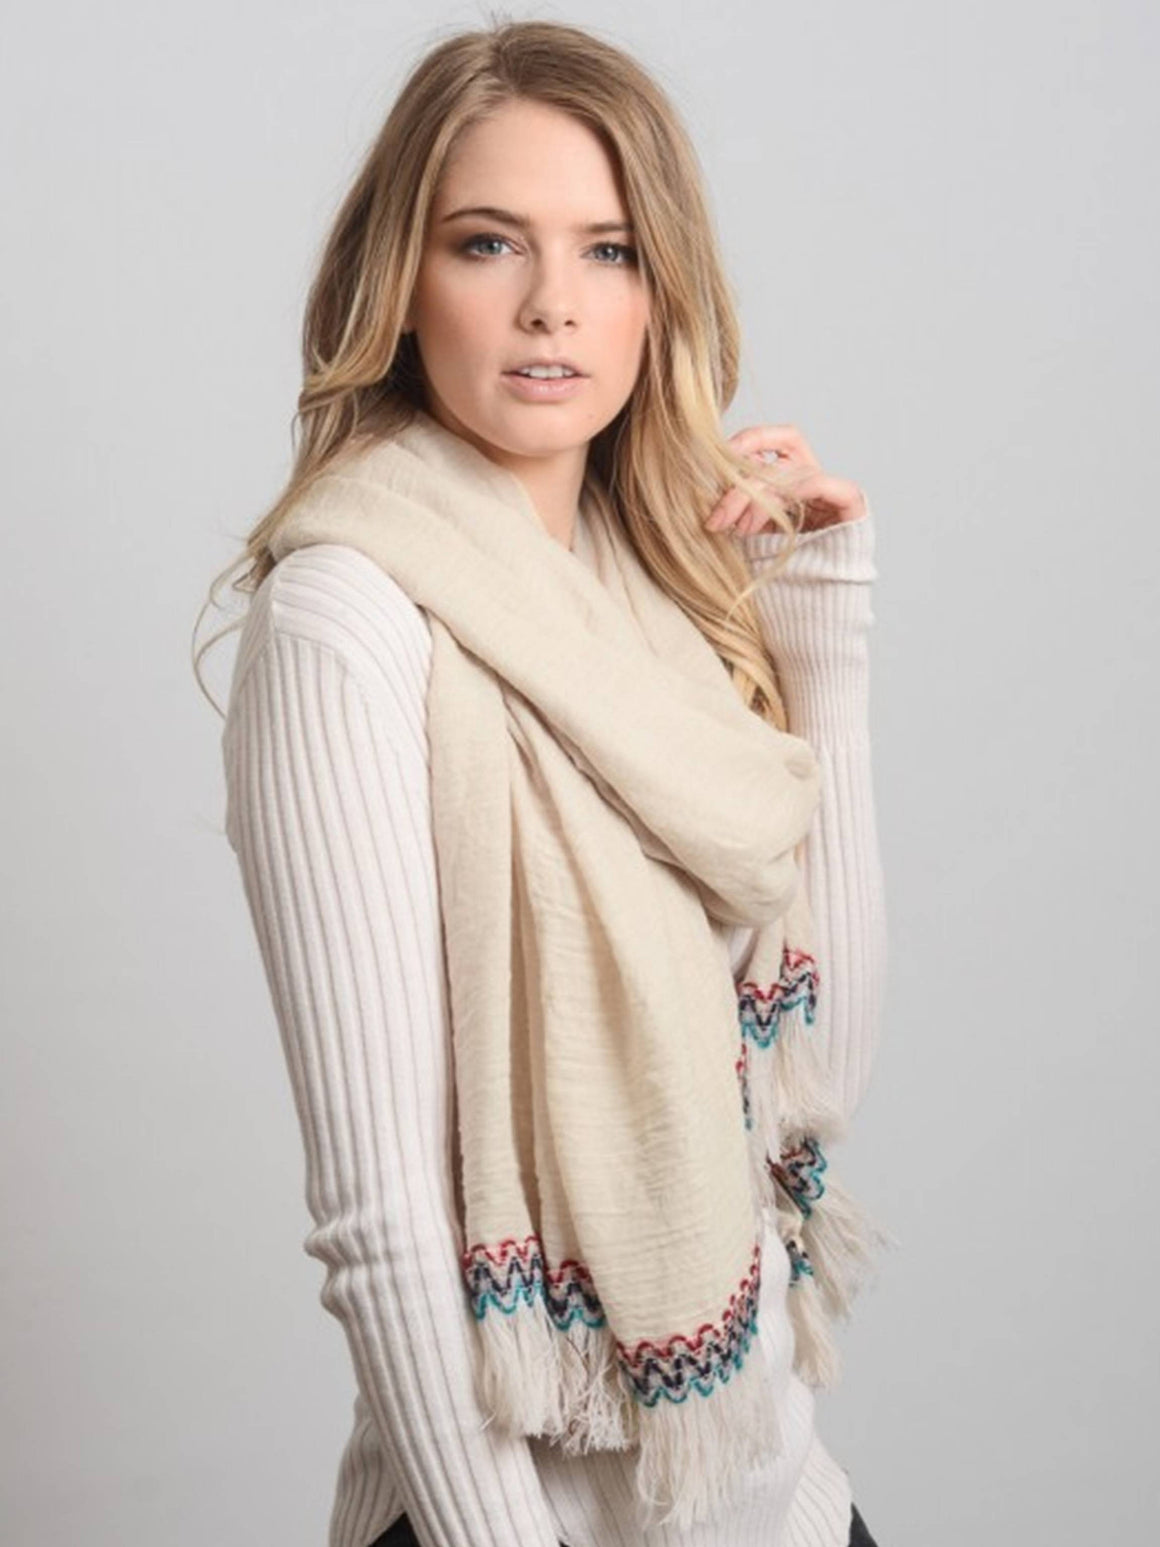 Spring Scarves, Summer Scarves, Trendy Scarves - Bedao Boutique